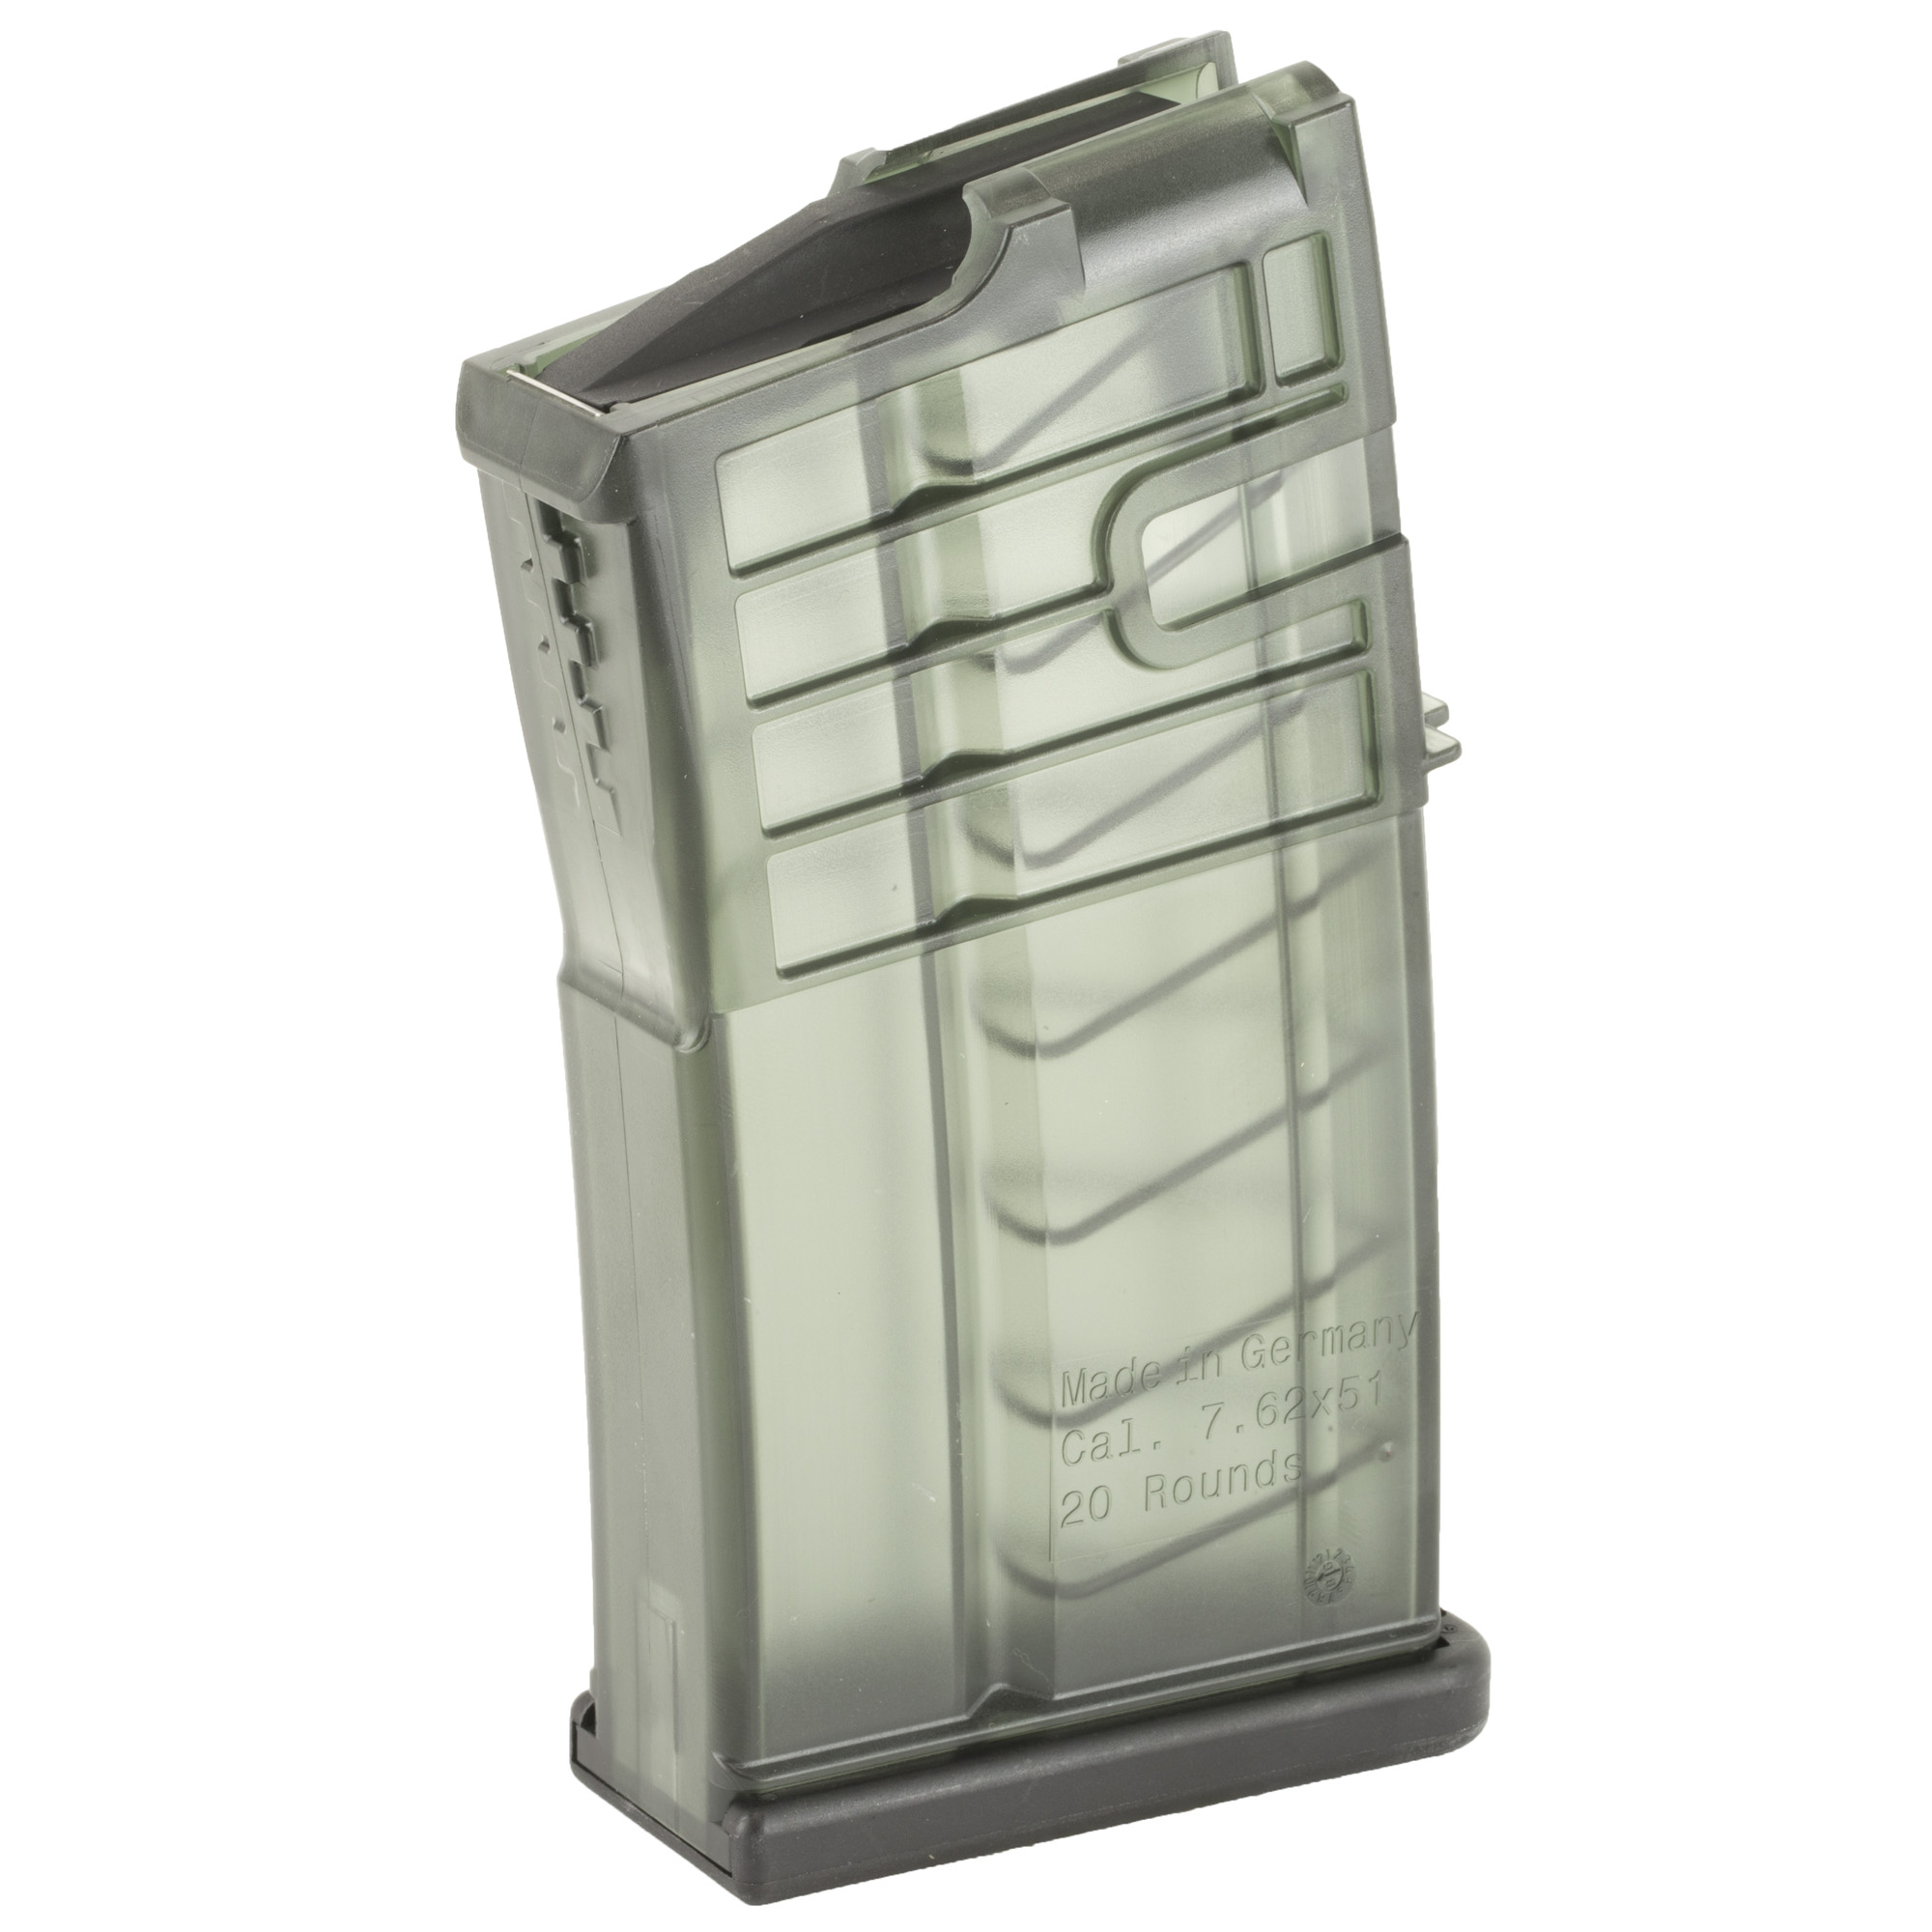 """This magazine is made to H&K specifications and tolerances using high quality materials that provide perfect fit"""" durability and reliability."""